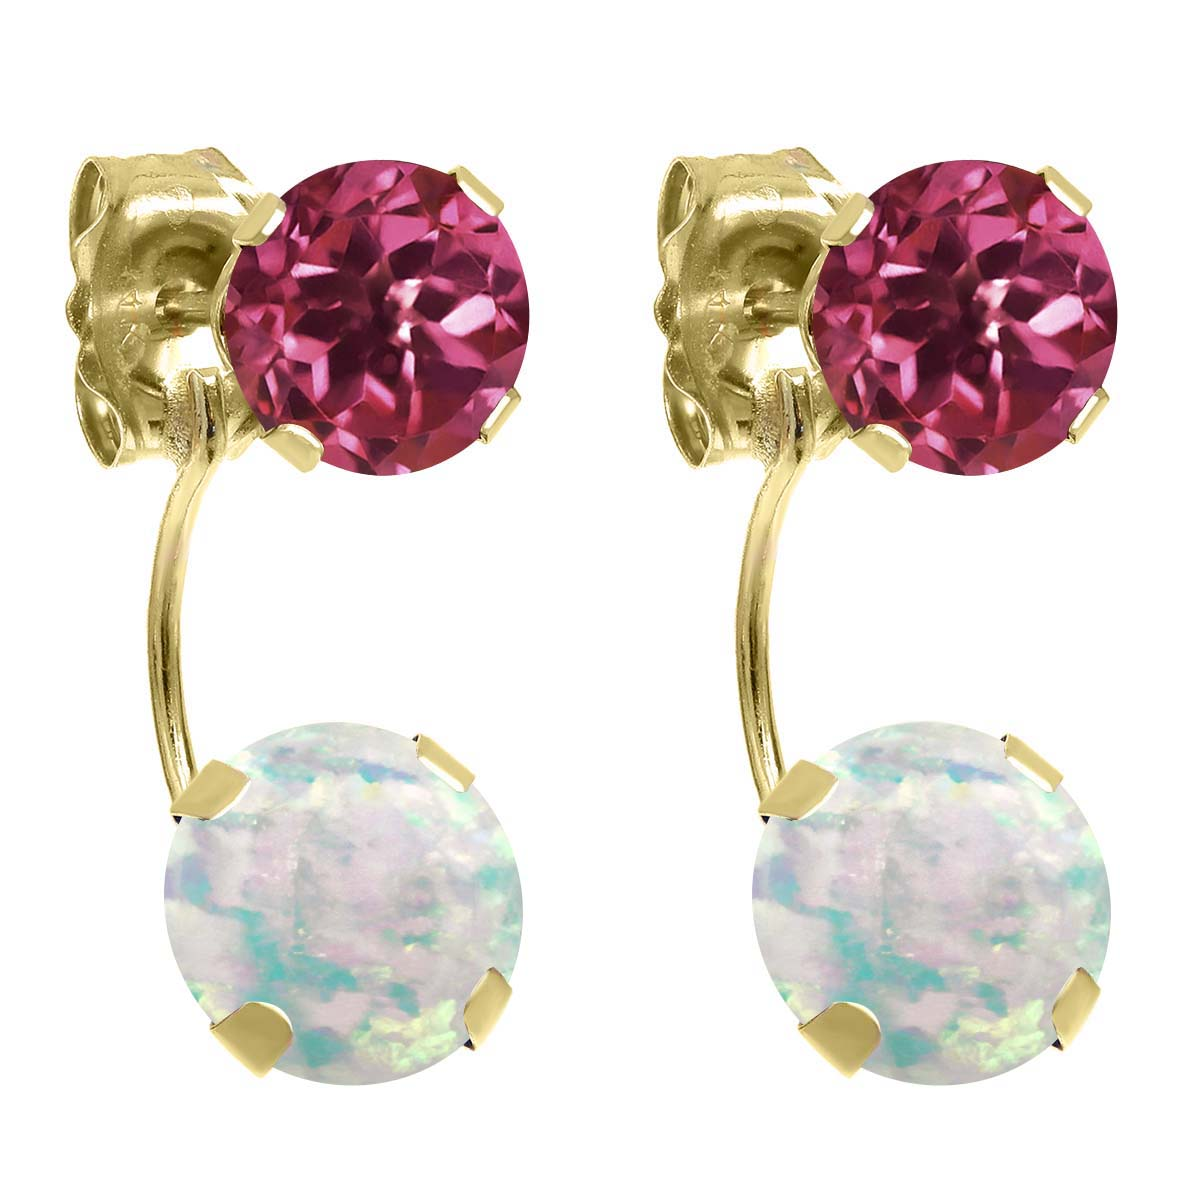 2.30 Ct Round White Simulated Opal Pink Tourmaline 14K Yellow Gold Earrings by